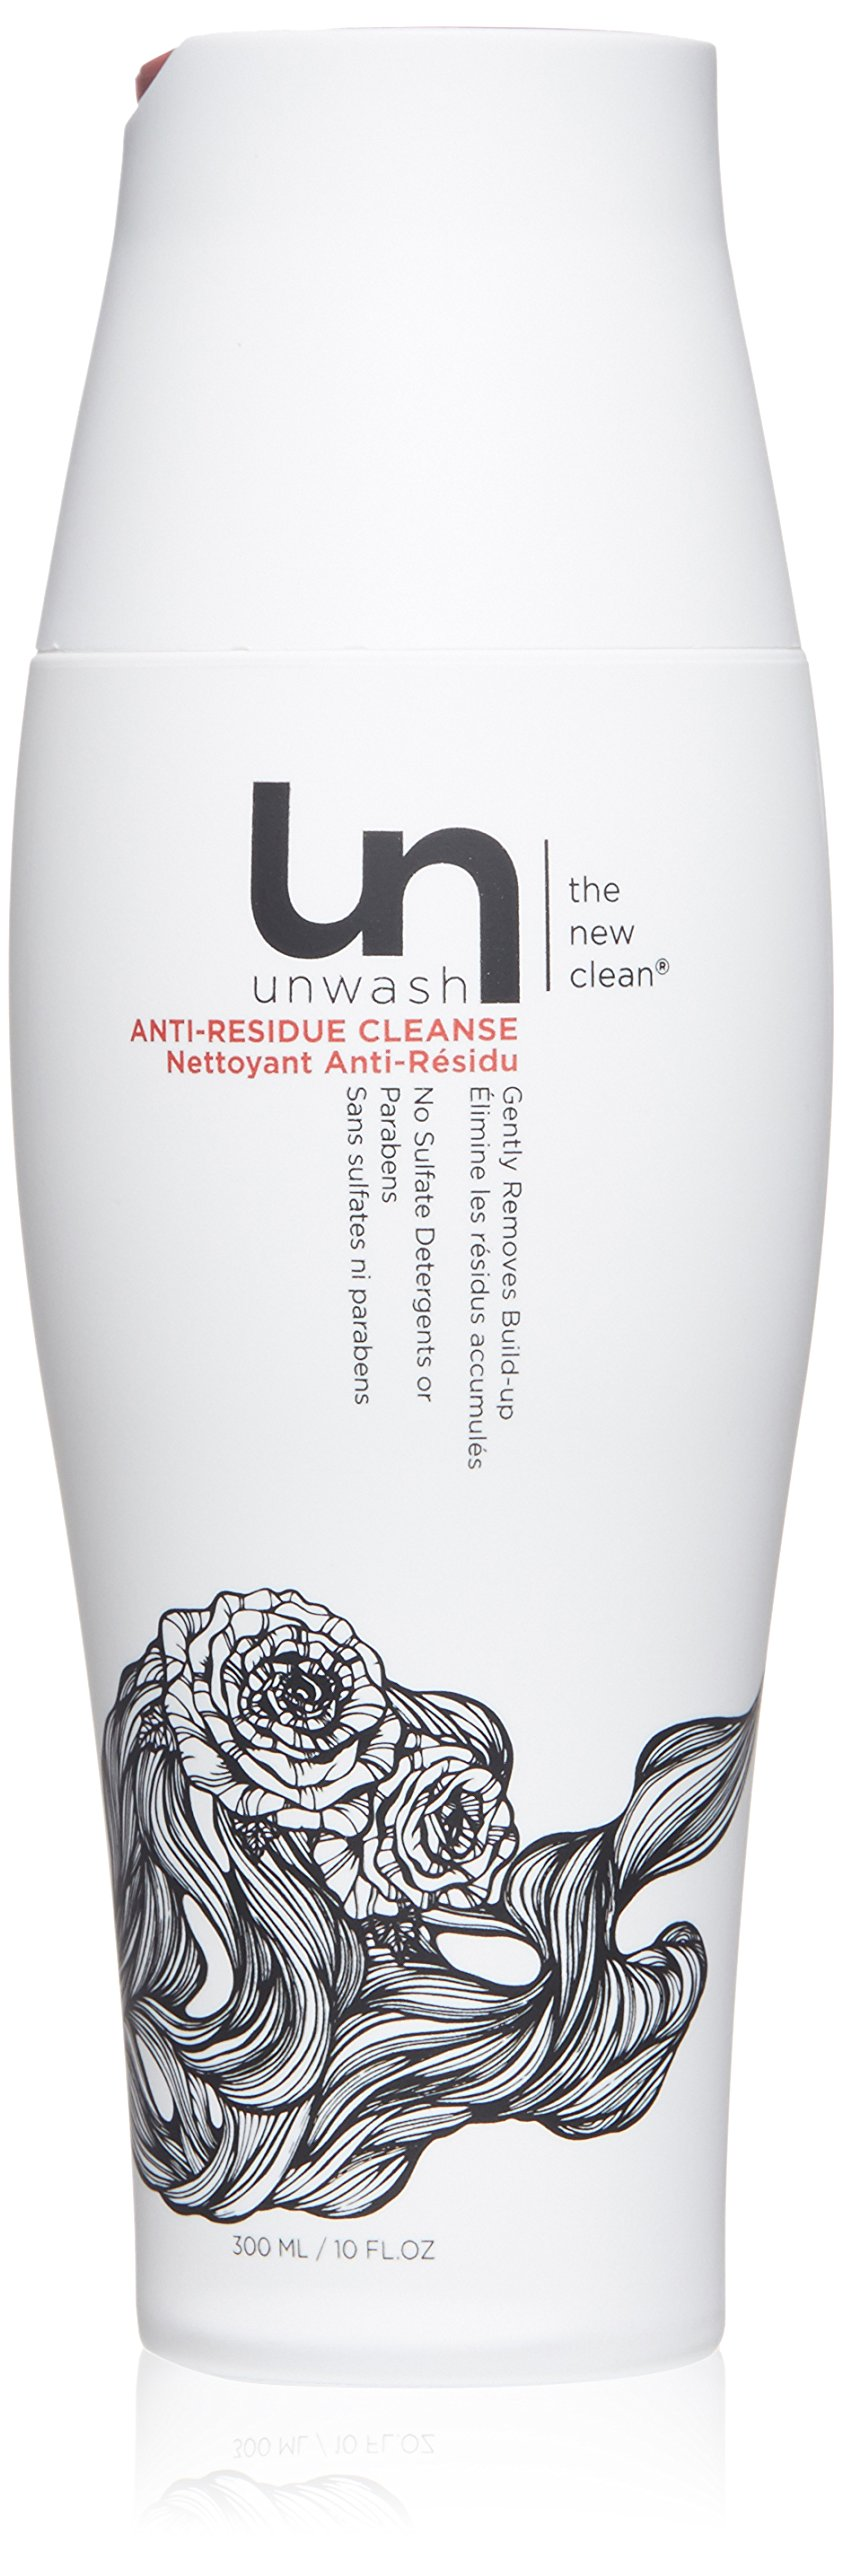 Unwash Anti Residue Hair Cleanse: Gentle pH Balanced Daily Hair Cleansing Conditioning Wash, 10 oz